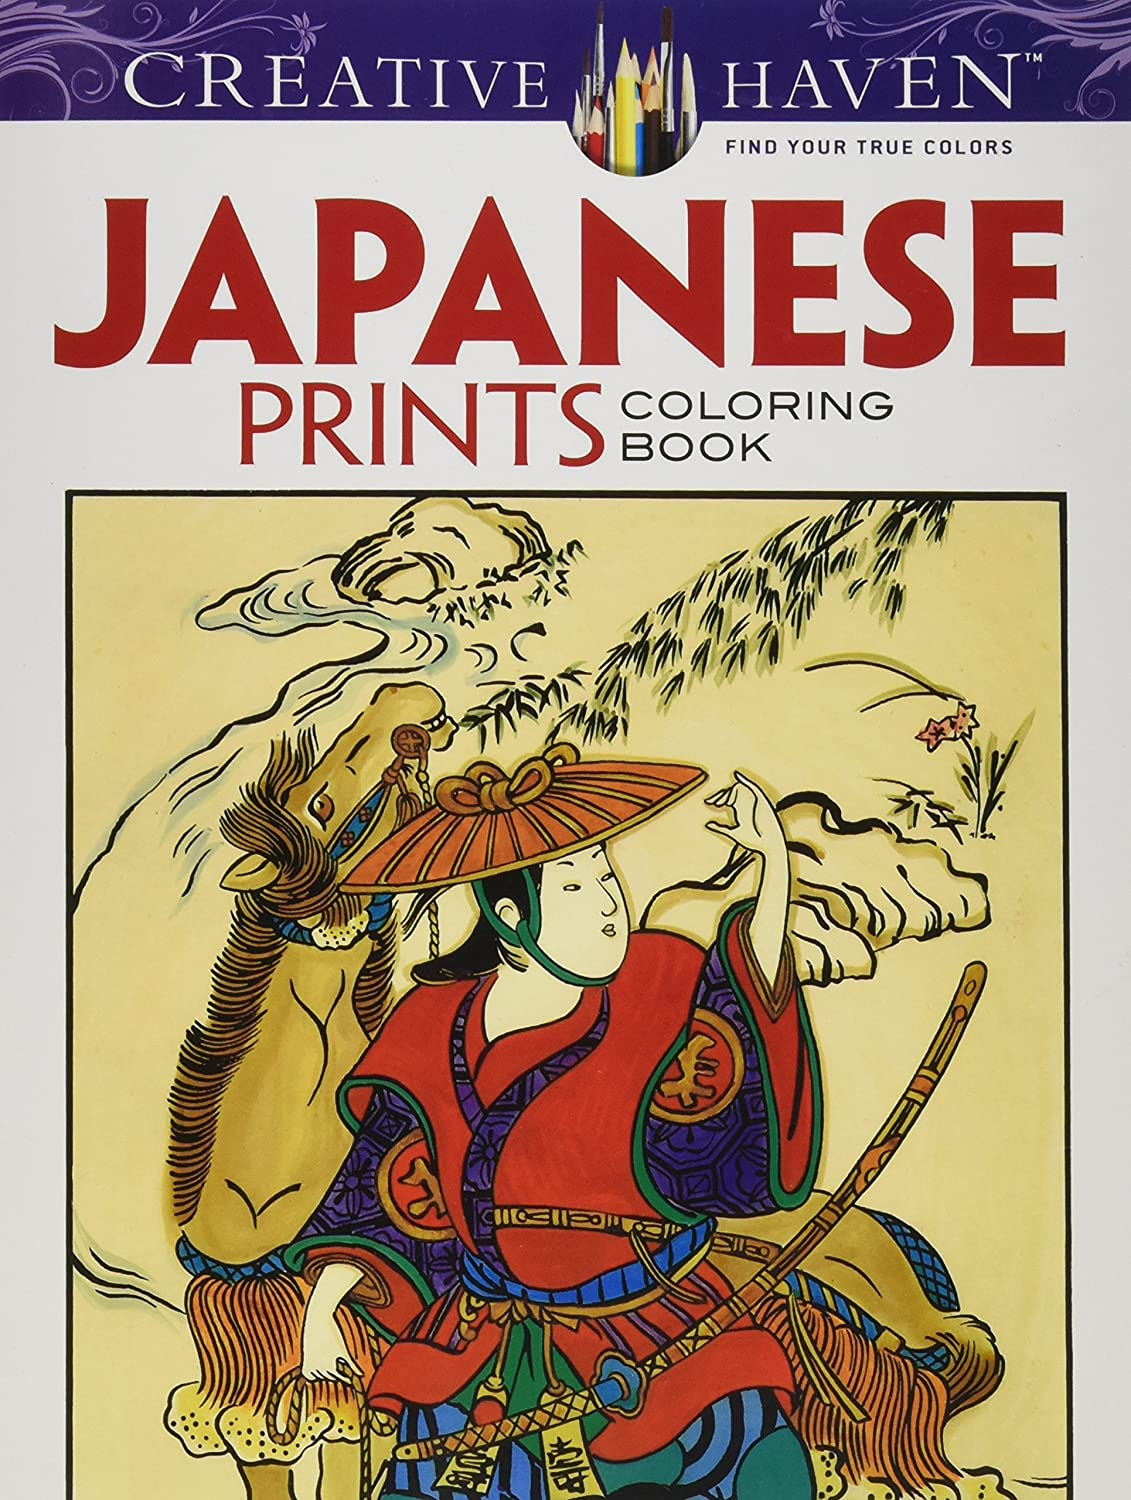 Dover Paper Publications-Creative Haven - Impresiones japonesas